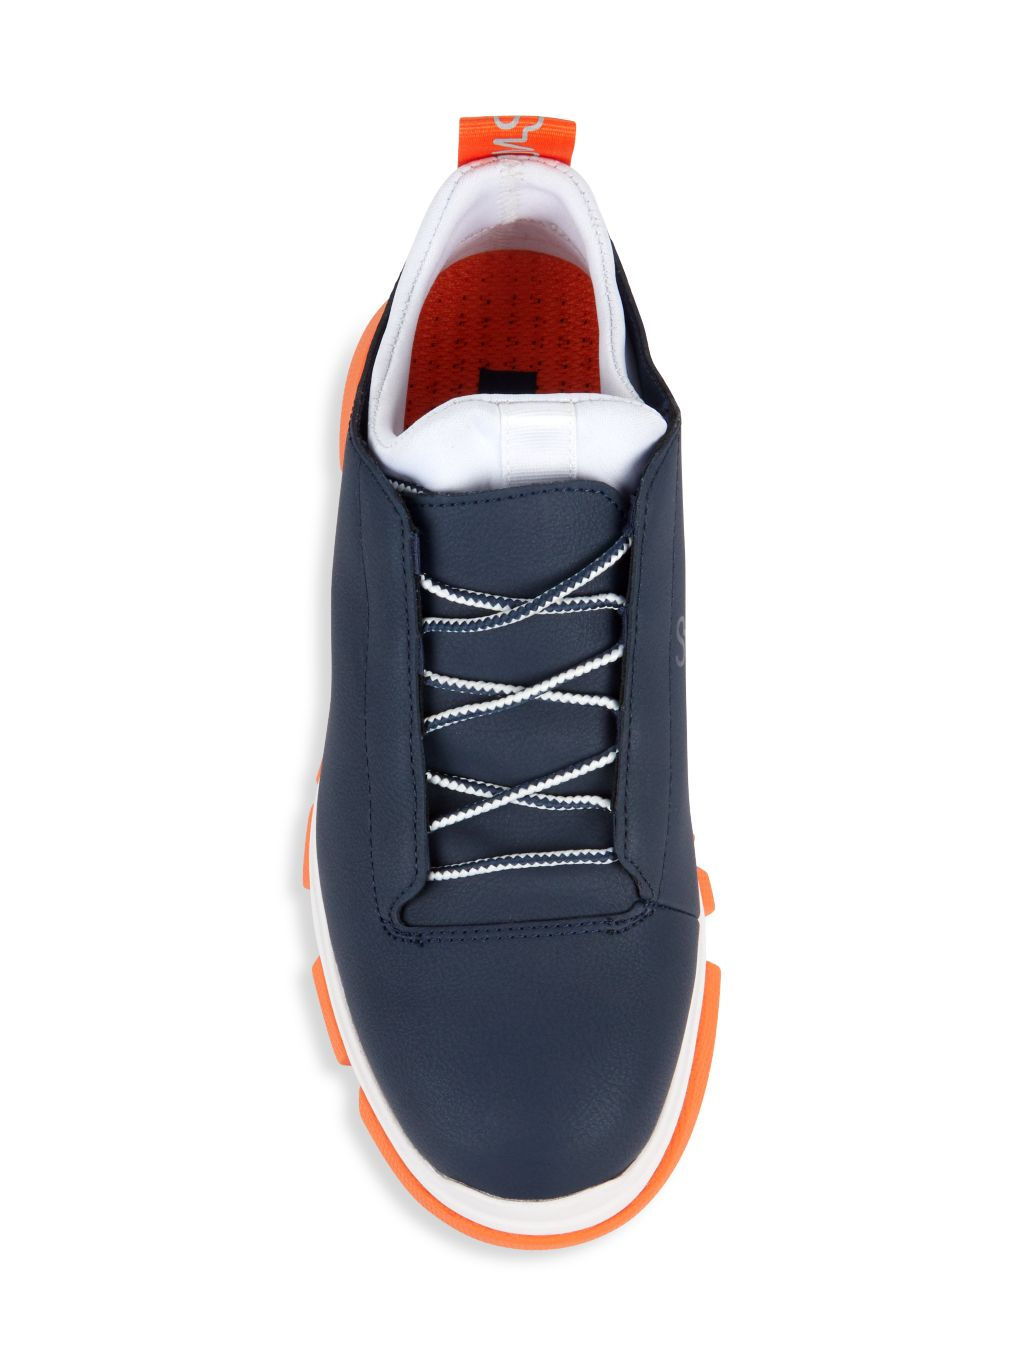 Swims City Hiker Leather-Coated Sneakers